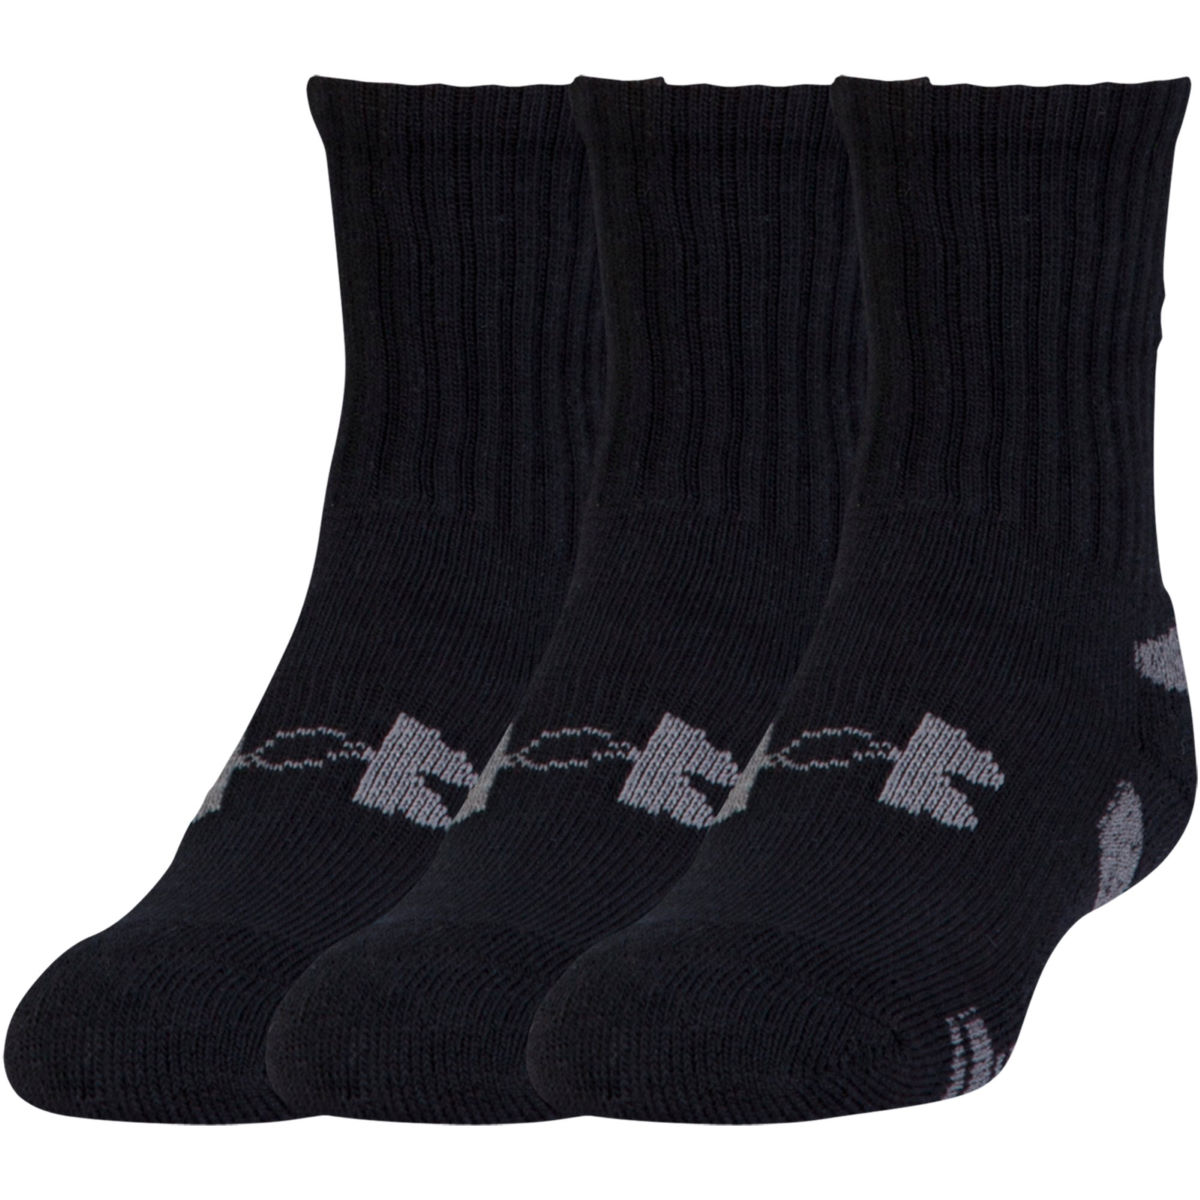 Chaussettes Under Armour HeatGear Crew (lot de 3) - M Noir/Blanc